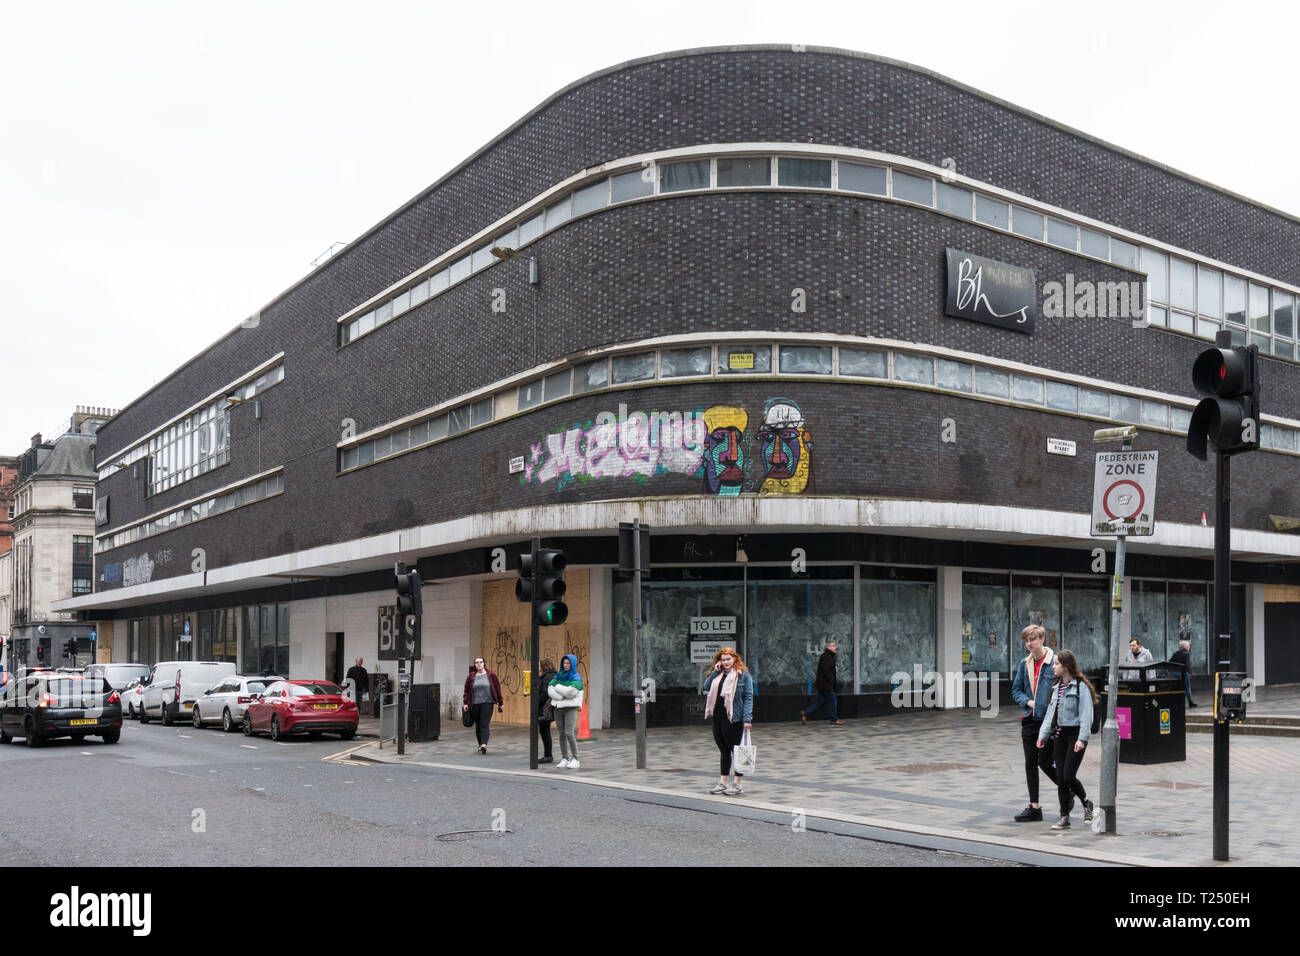 empty BHS store in Sauchiehall Street, Glasgow, Scotland, UK Stock Photo